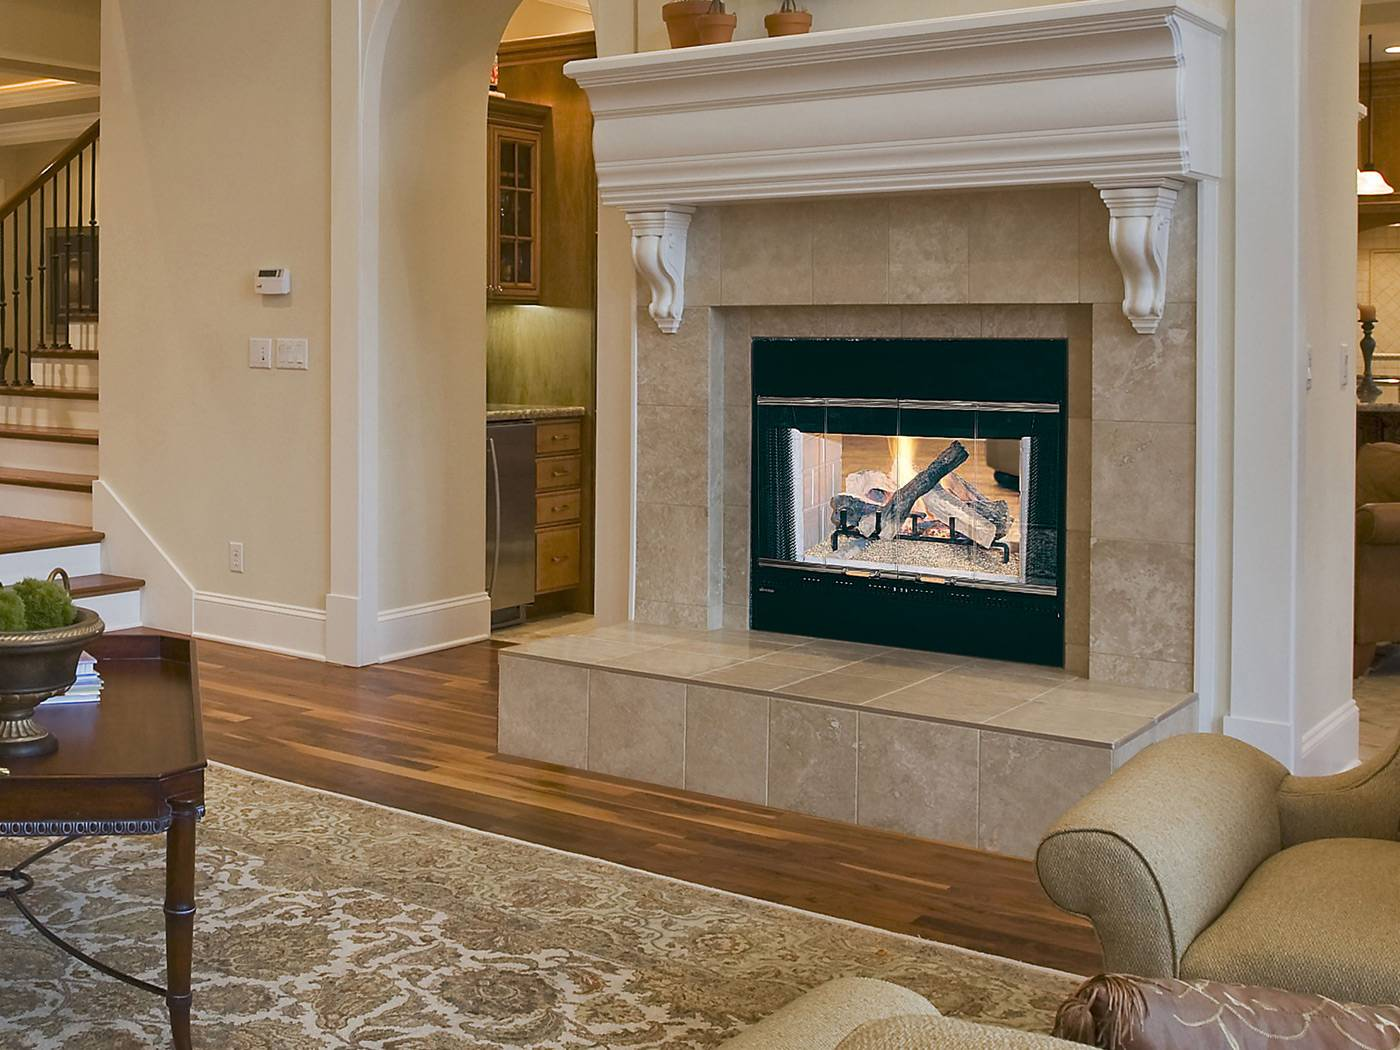 The Hst 48d Wood Burning Fireplace